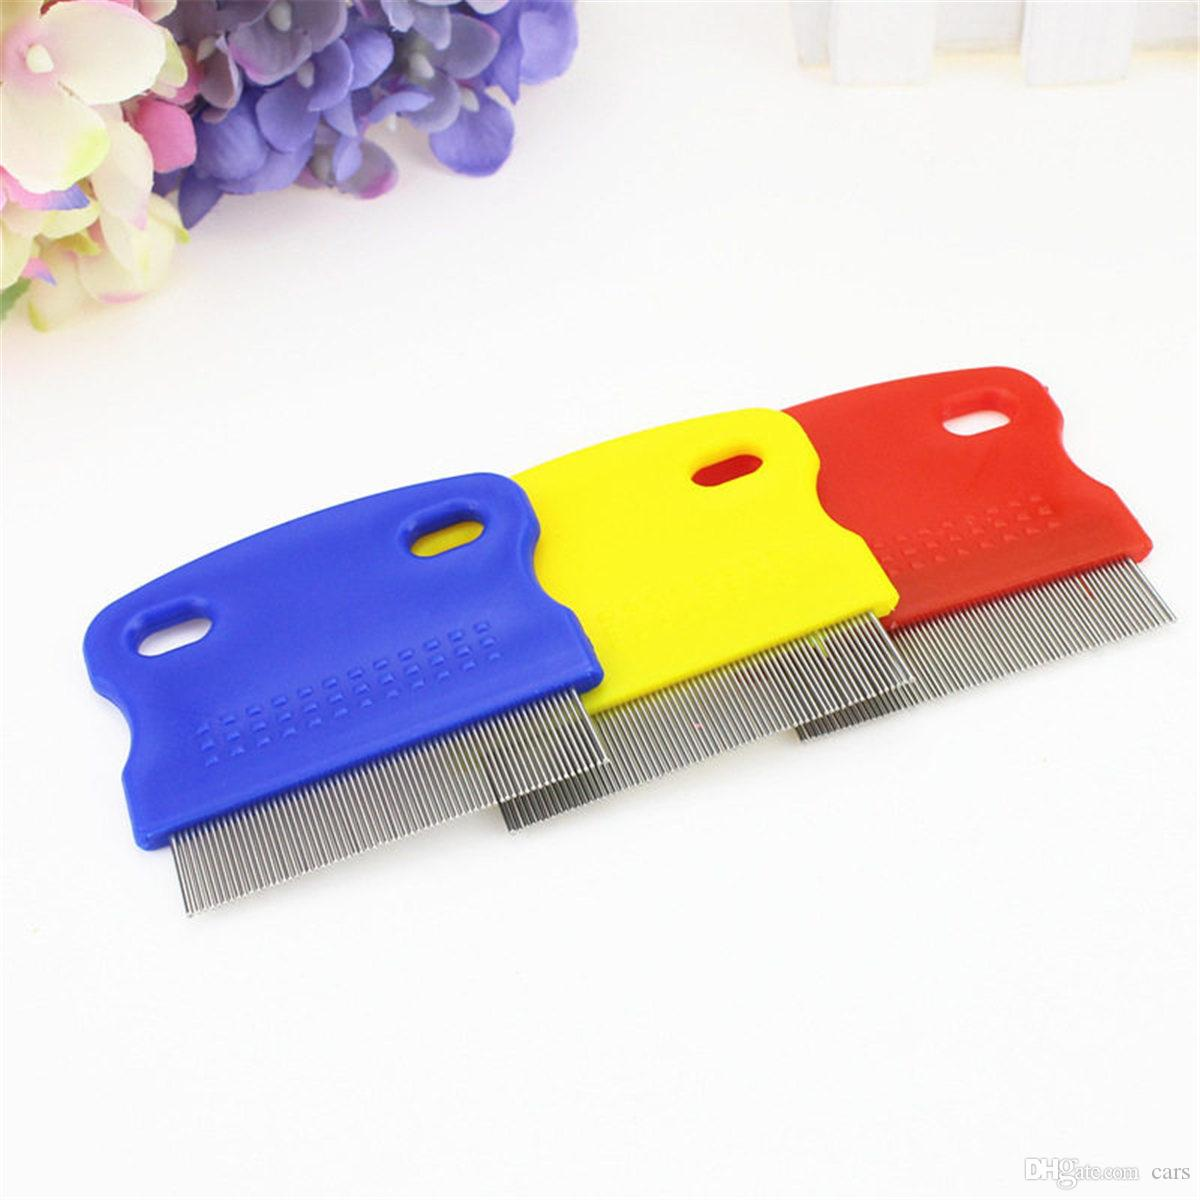 Pet Dog Cat Clean Comb Brush Dog Hair Grooming Tool Stainless Steel Needle Nit Lice Comb Pet Flea Comb Catching Lice